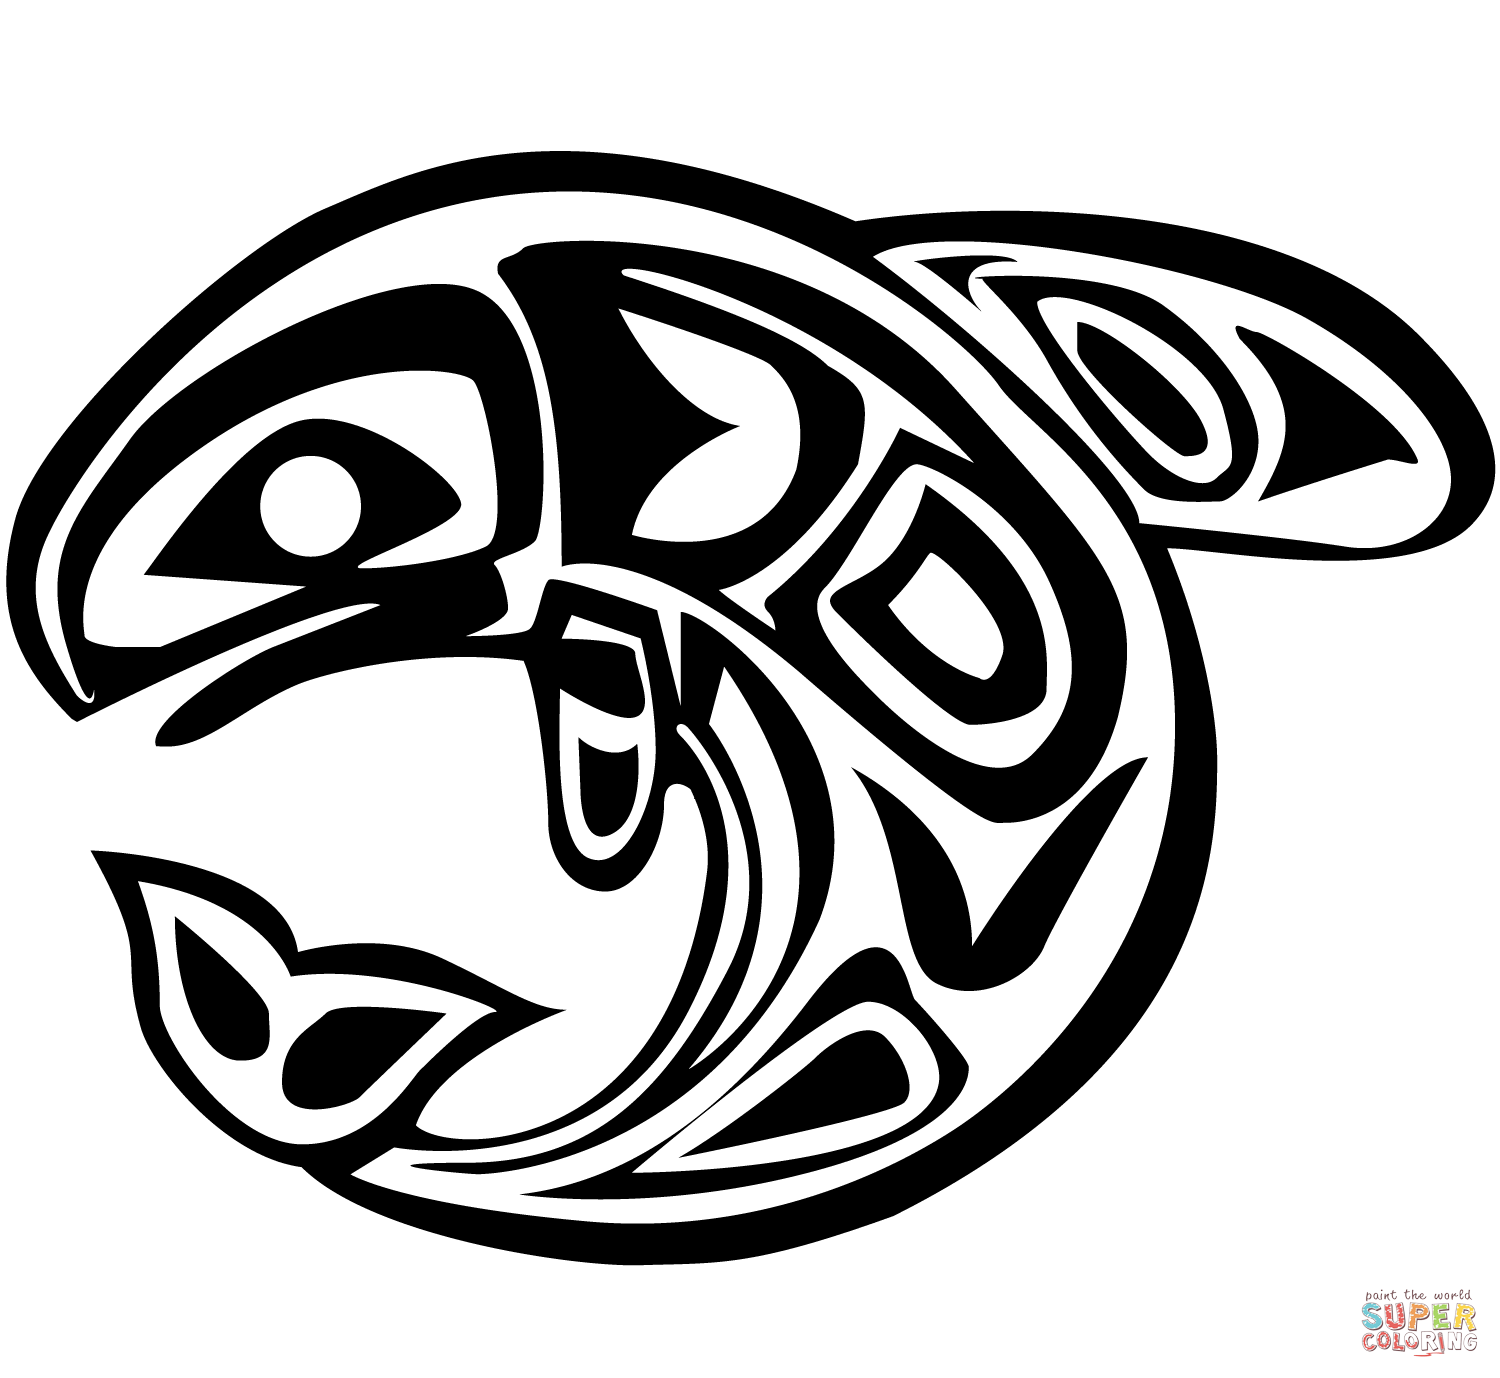 Haida Art  Whale coloring page from Canadian Aboriginal